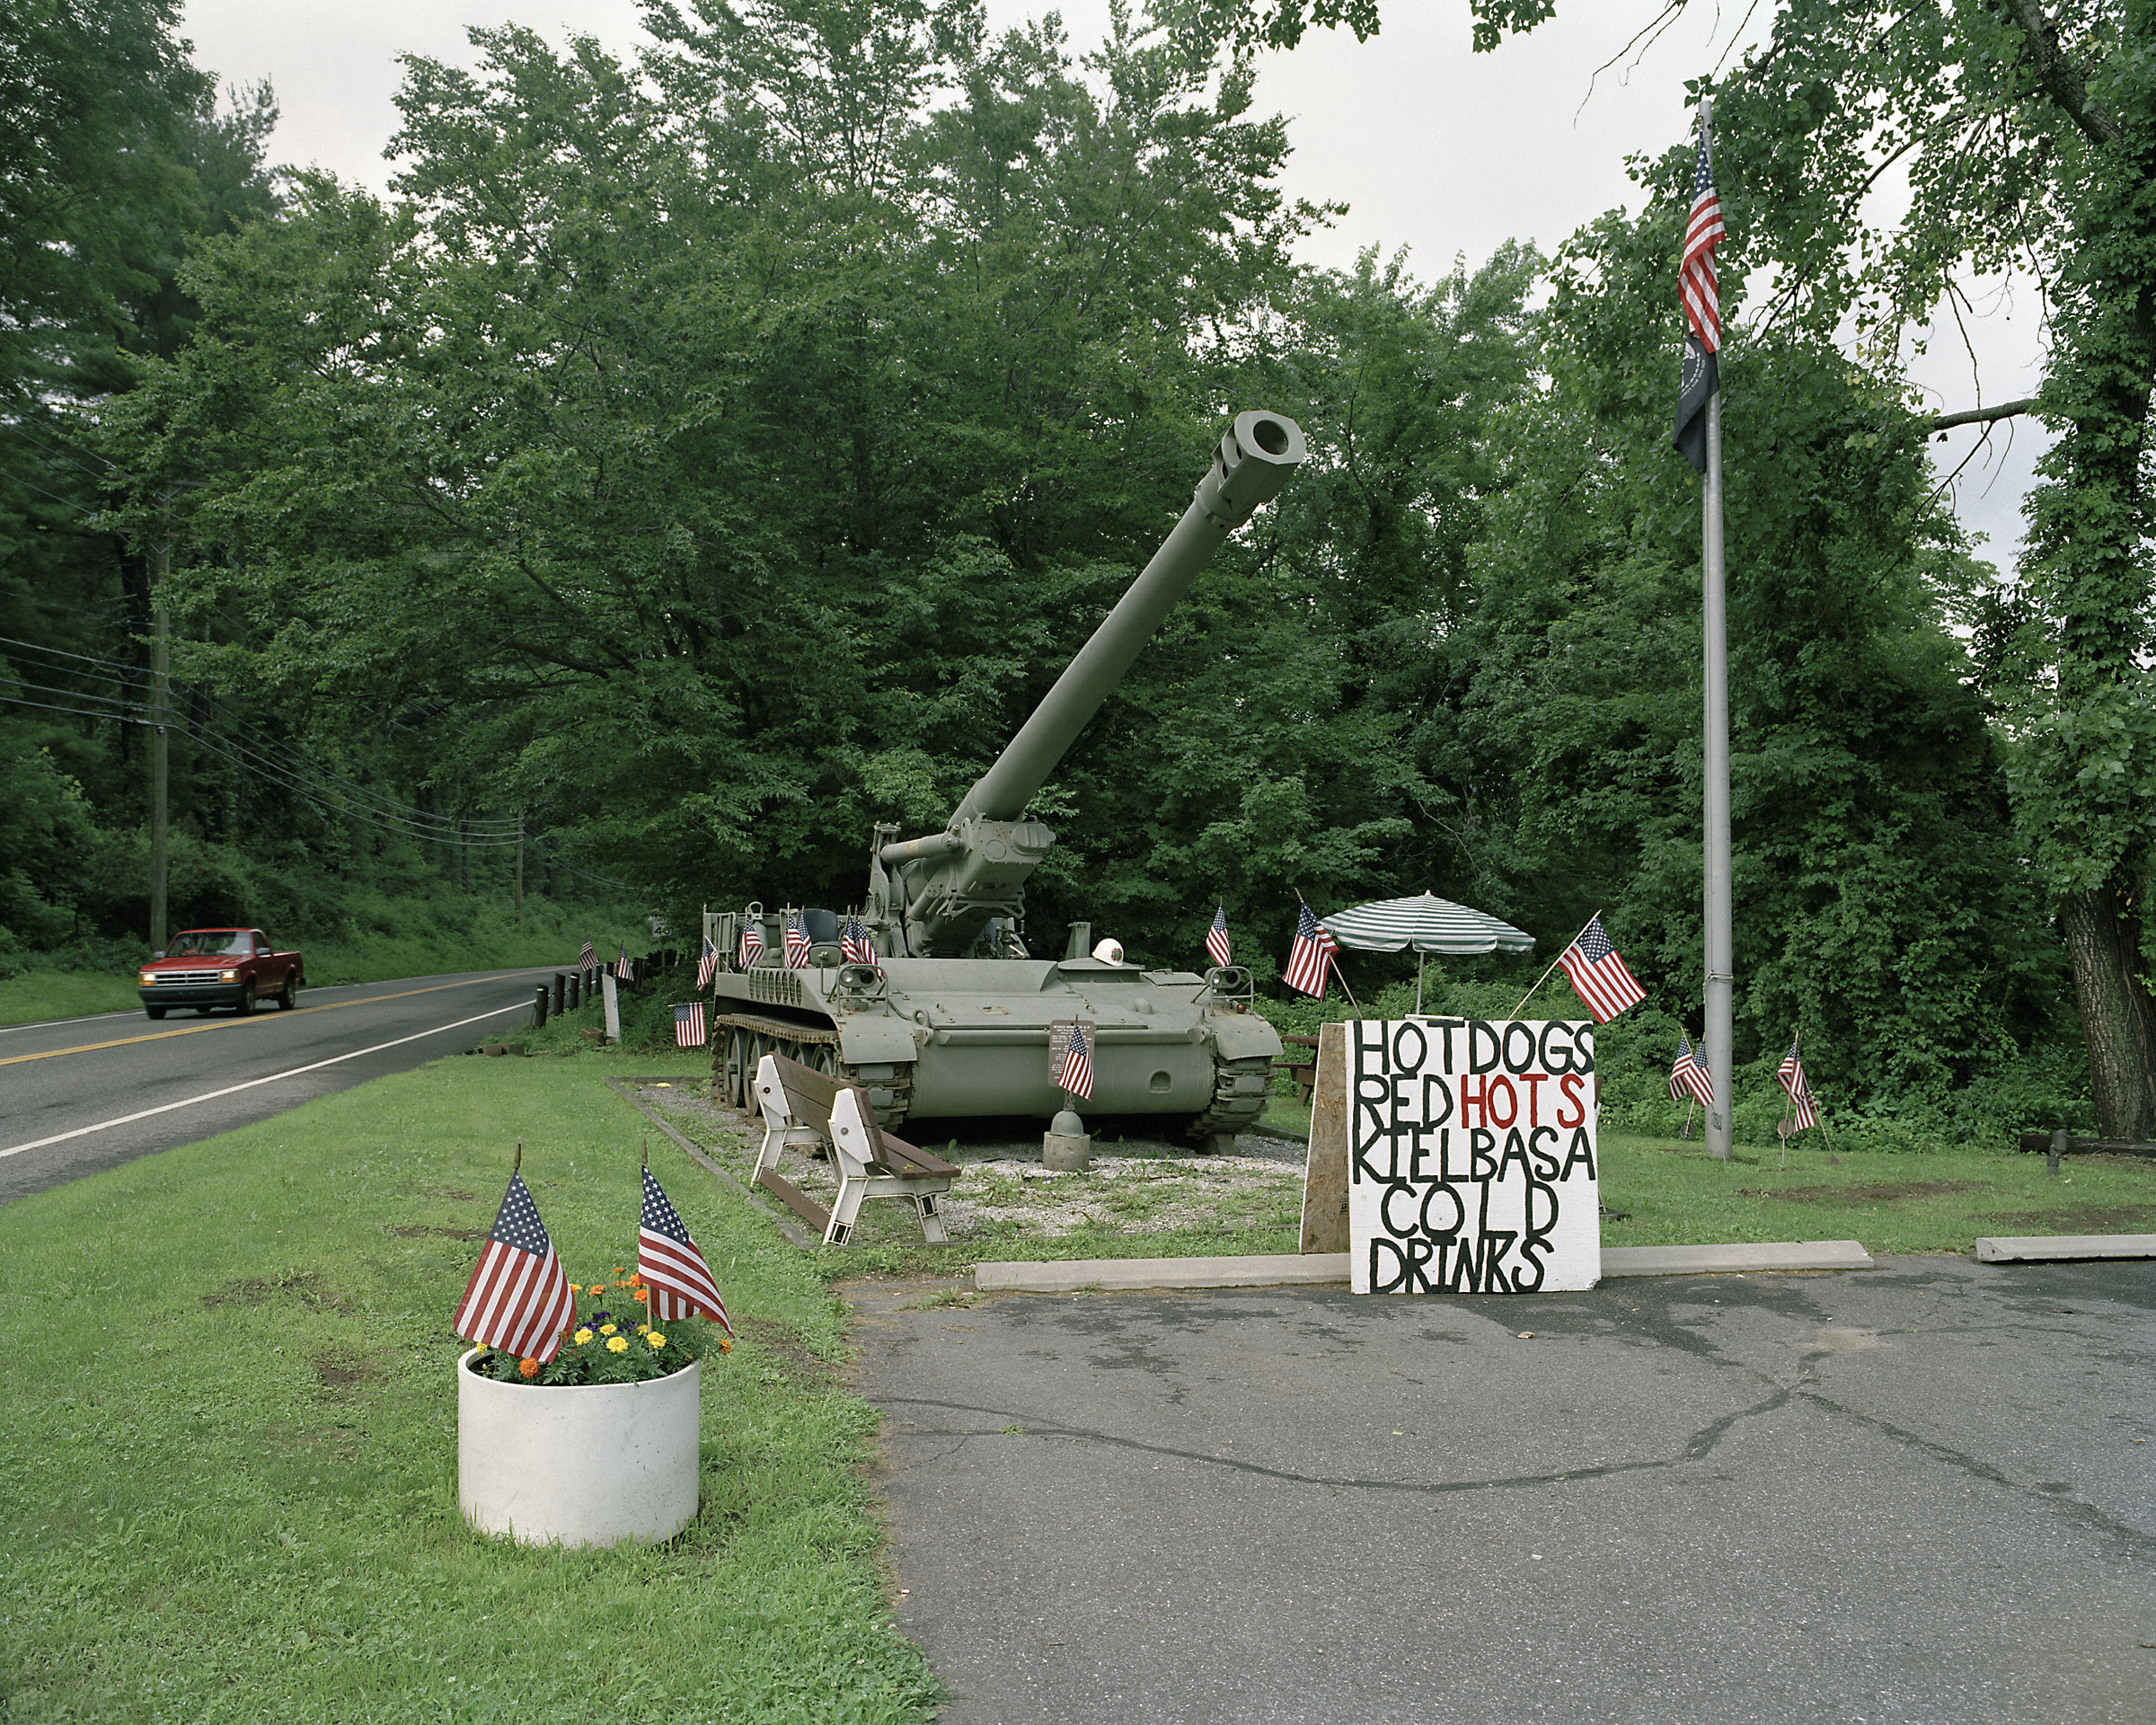 M110A2 self-propelled howitzer, VFW Post 296, Winsted, Connecticut 2008.